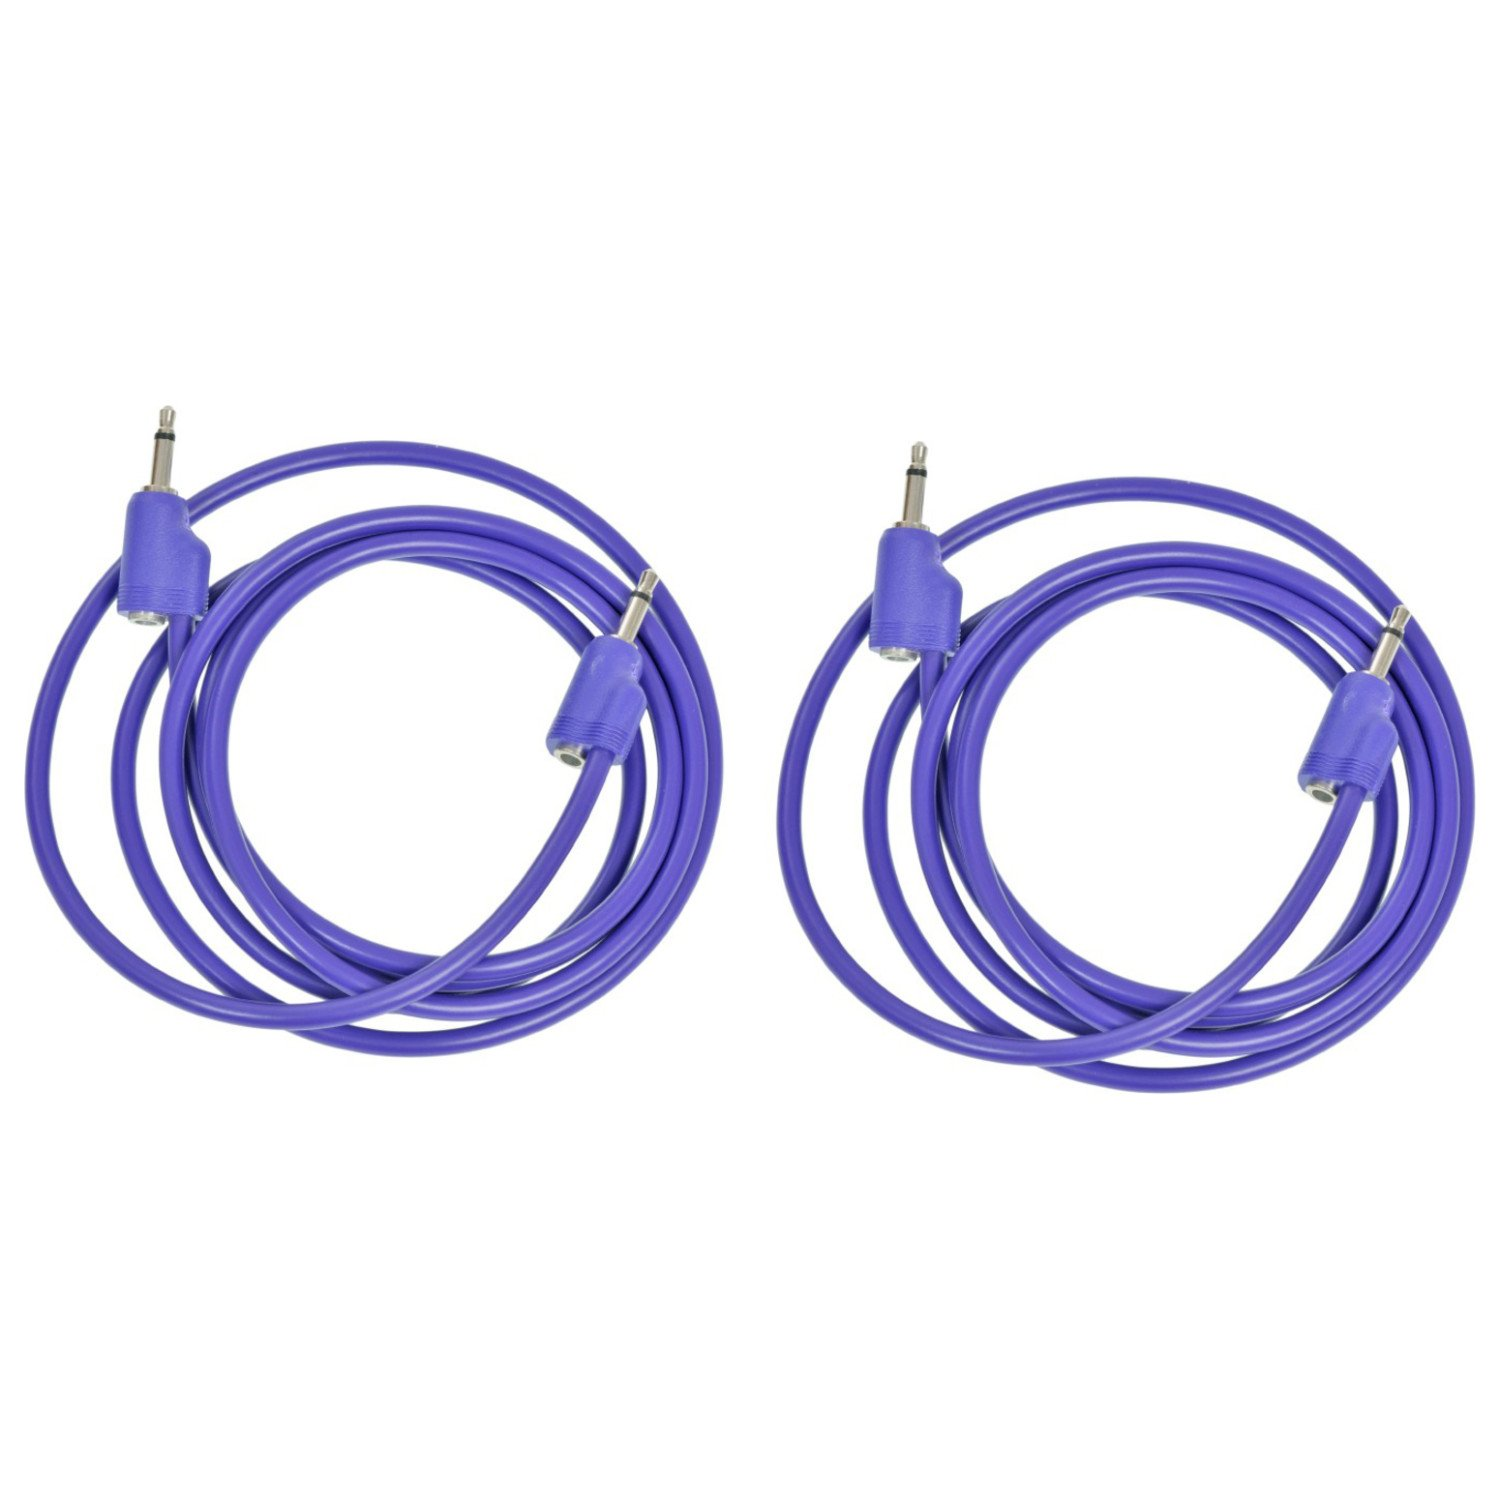 Tiptop Audio Purple 150cm Stackcables 2 PACK